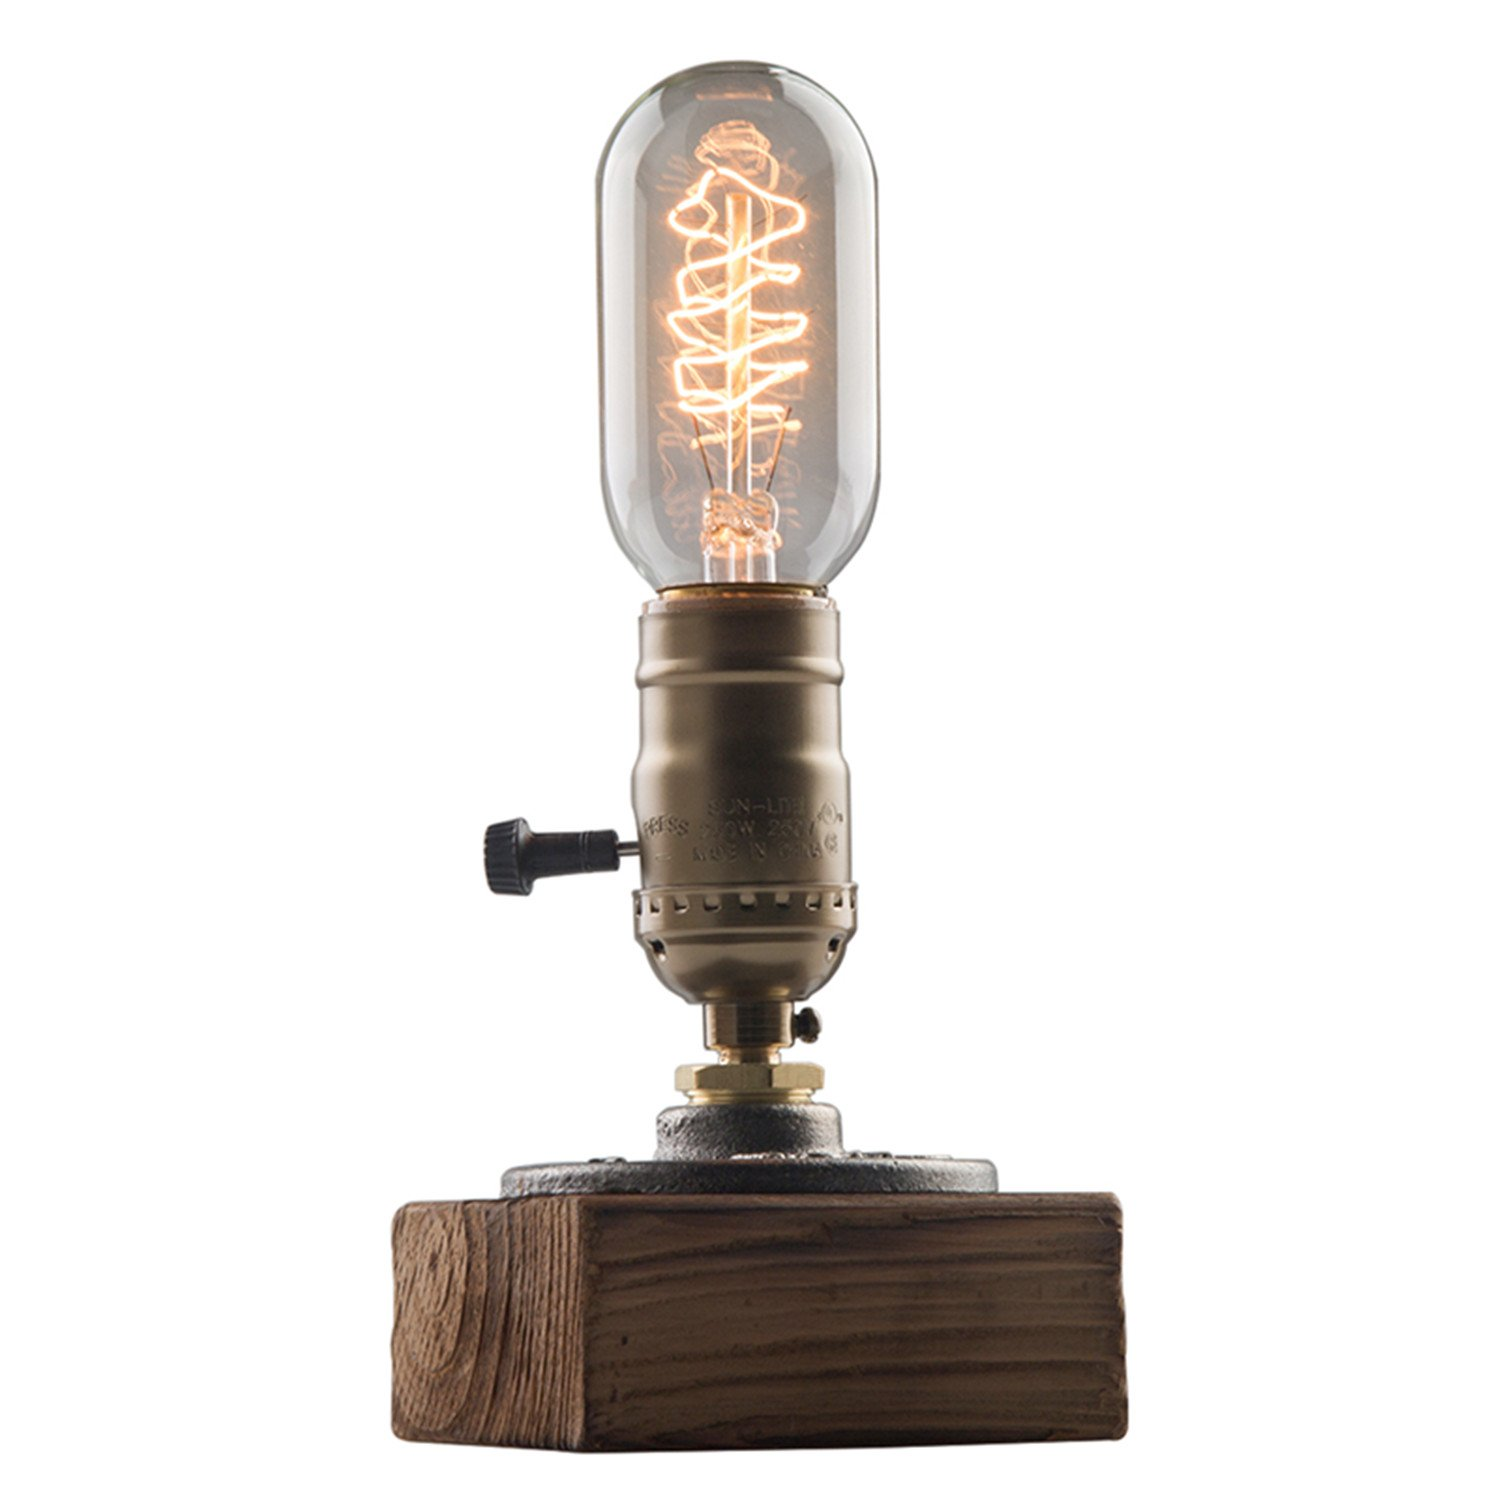 OYGROUP Vintage Weathered Wood Table Lamp,Wooden Base Retro Industrial Steampunk Iron Pipe Desk Light for Bedside,Bedroom Living,Dining Room,Cafe Bar,Studio,Hallway,House Decor,E26 Dimmable Lamps LED by OYGROUP